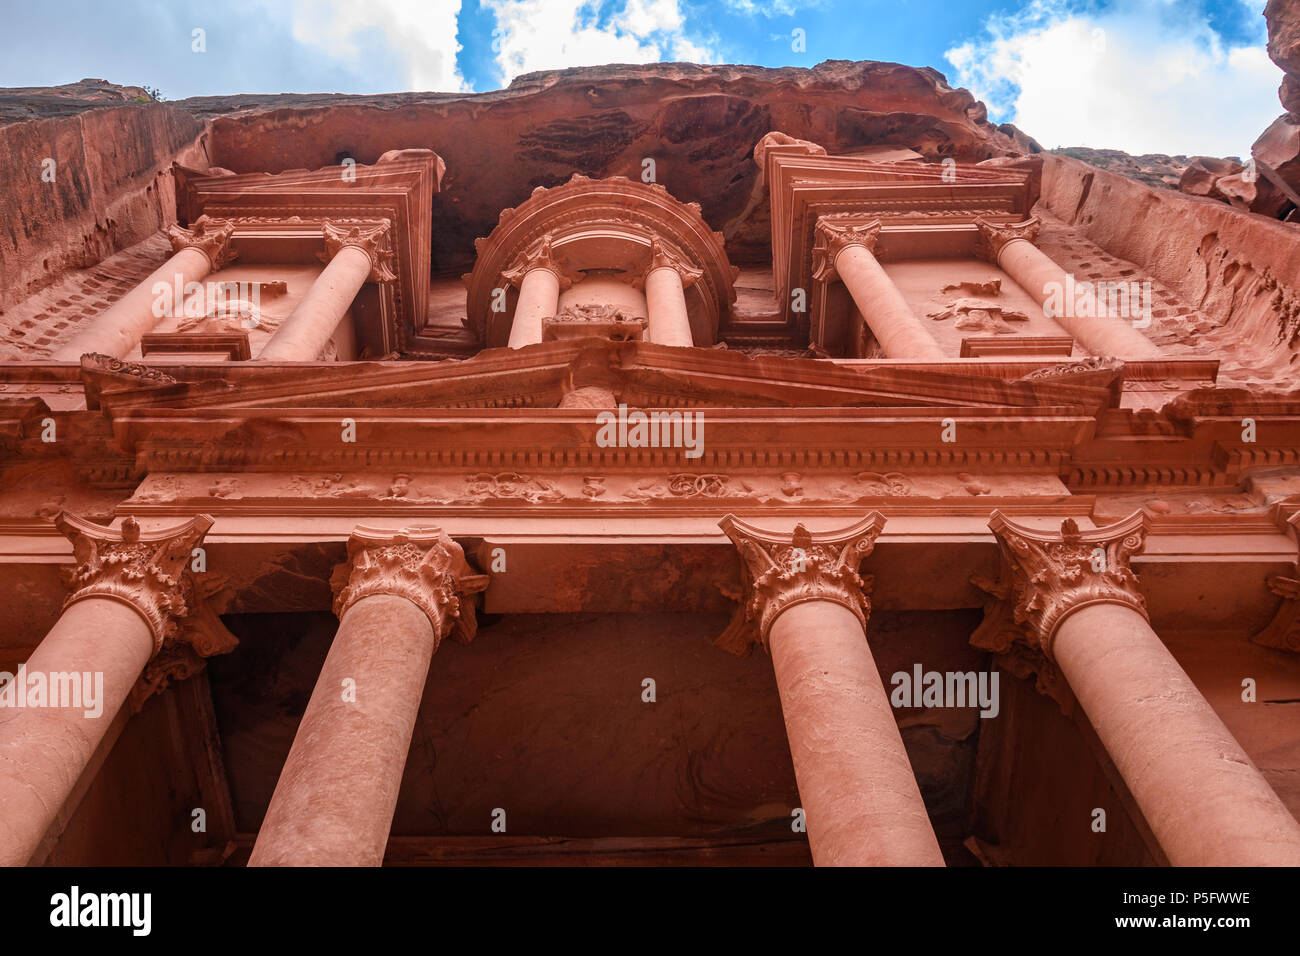 The Treasury from below in the ancient city of Petra, Jordan - Stock Image